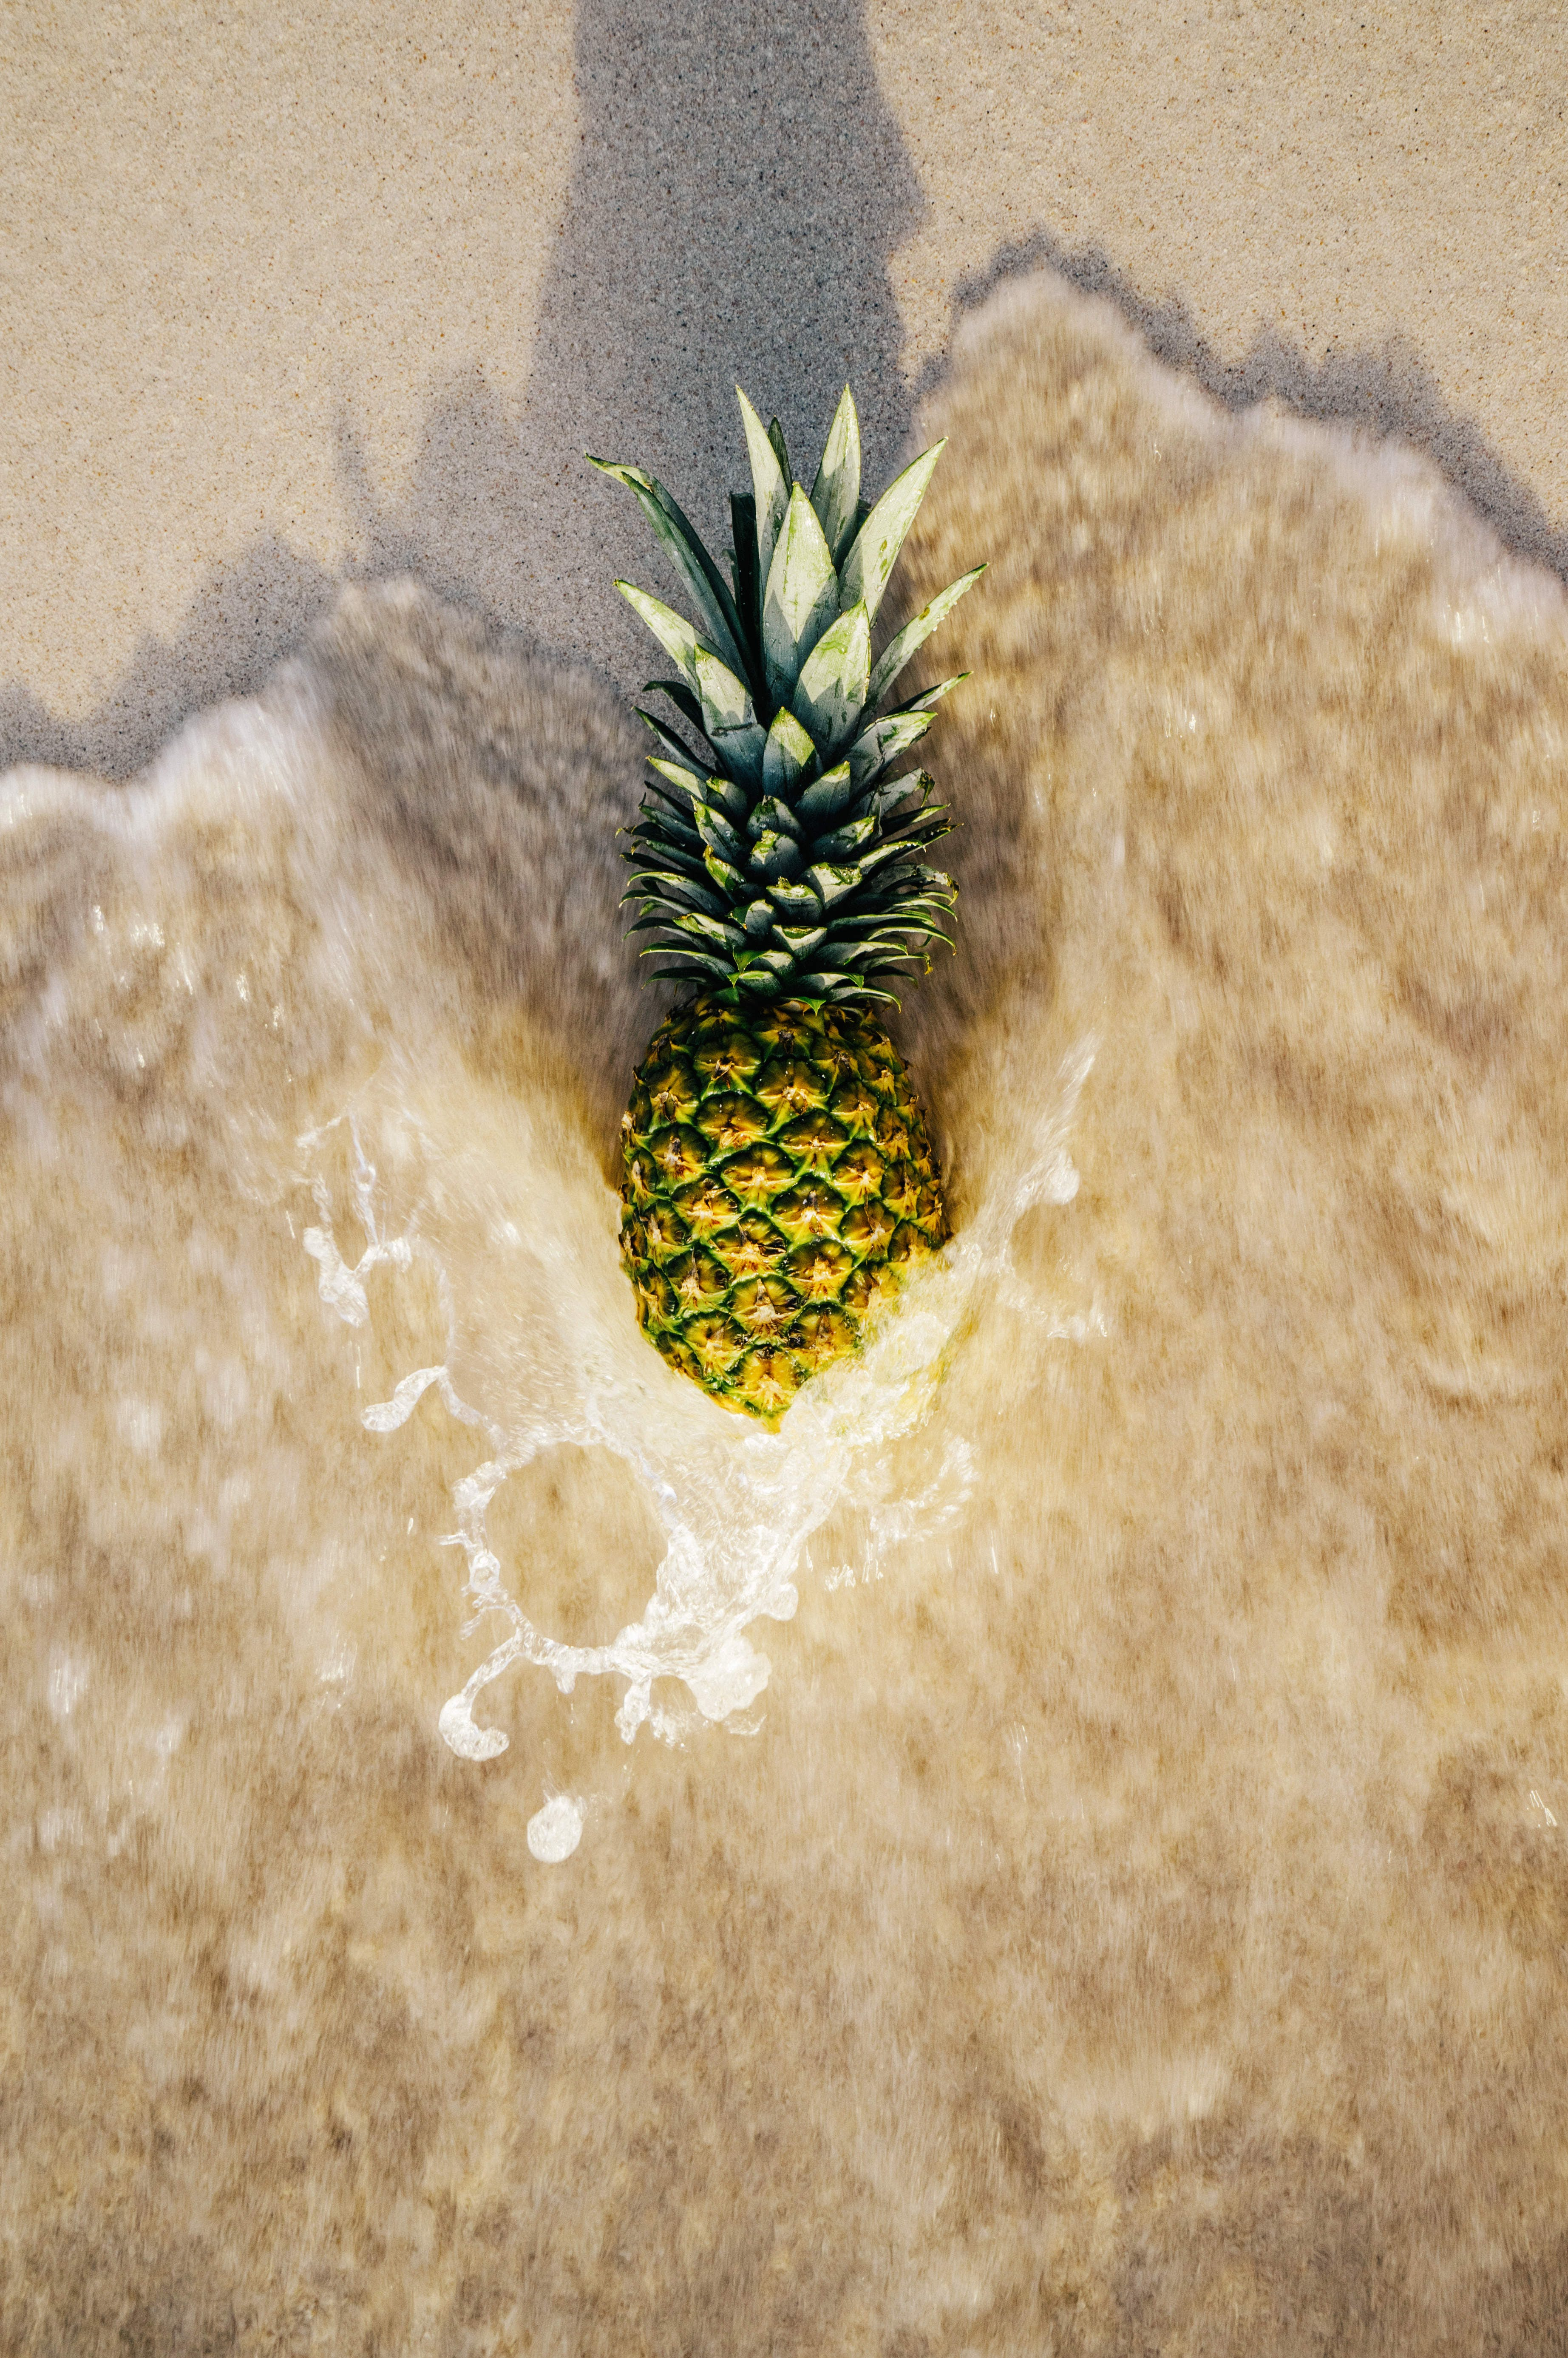 Pineapple on Sand Touched by Water